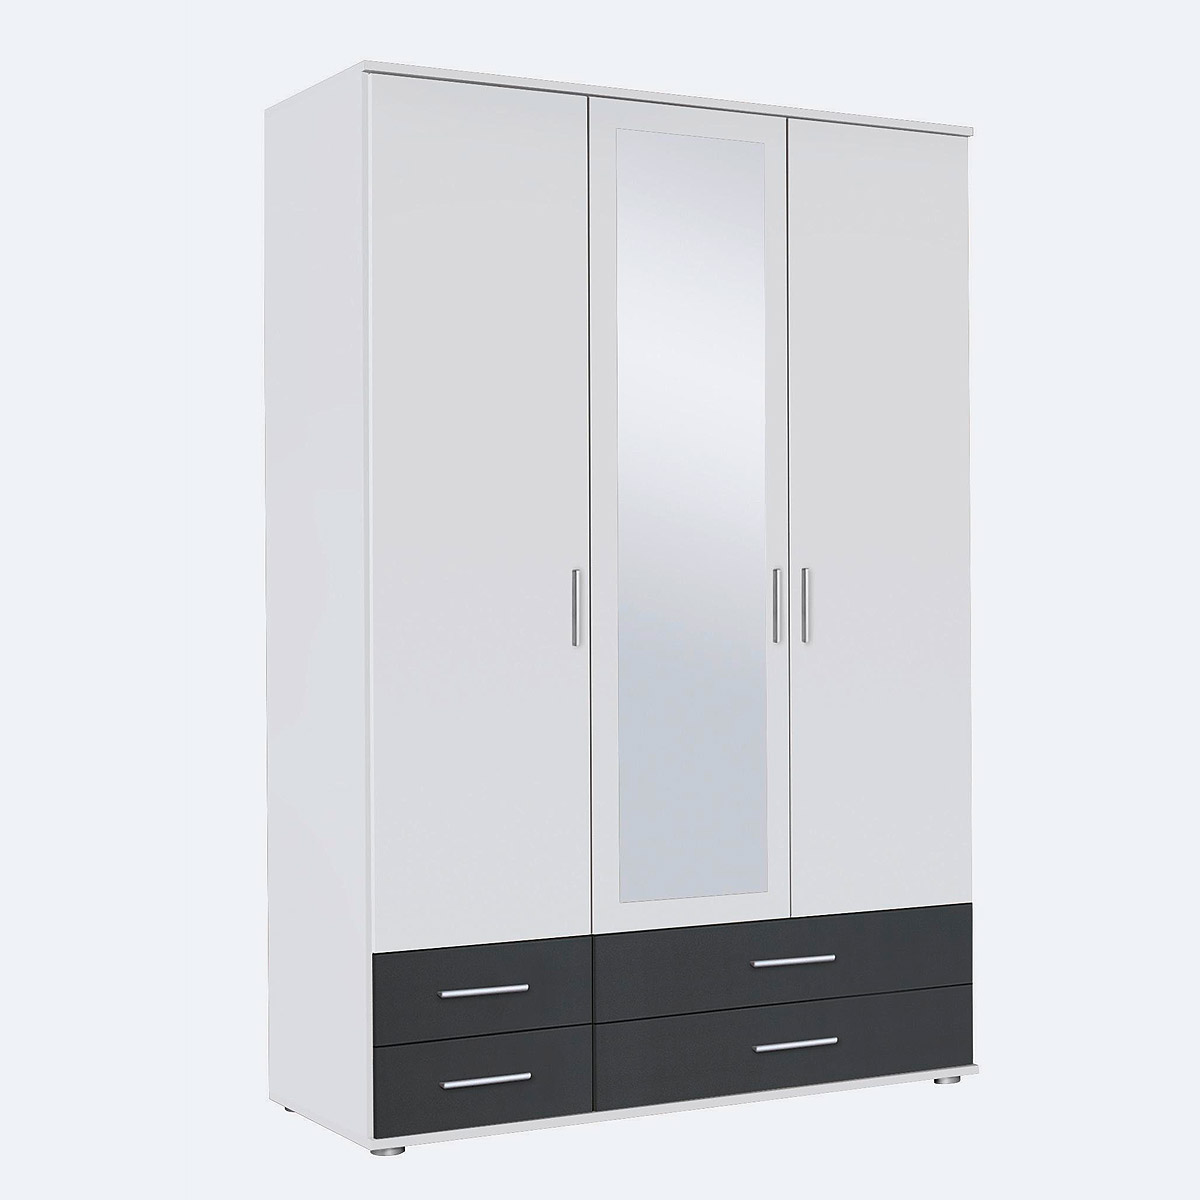 kleiderschrank rasant extra schrank mit spiegel wei grau metallic b 127 cm ebay. Black Bedroom Furniture Sets. Home Design Ideas